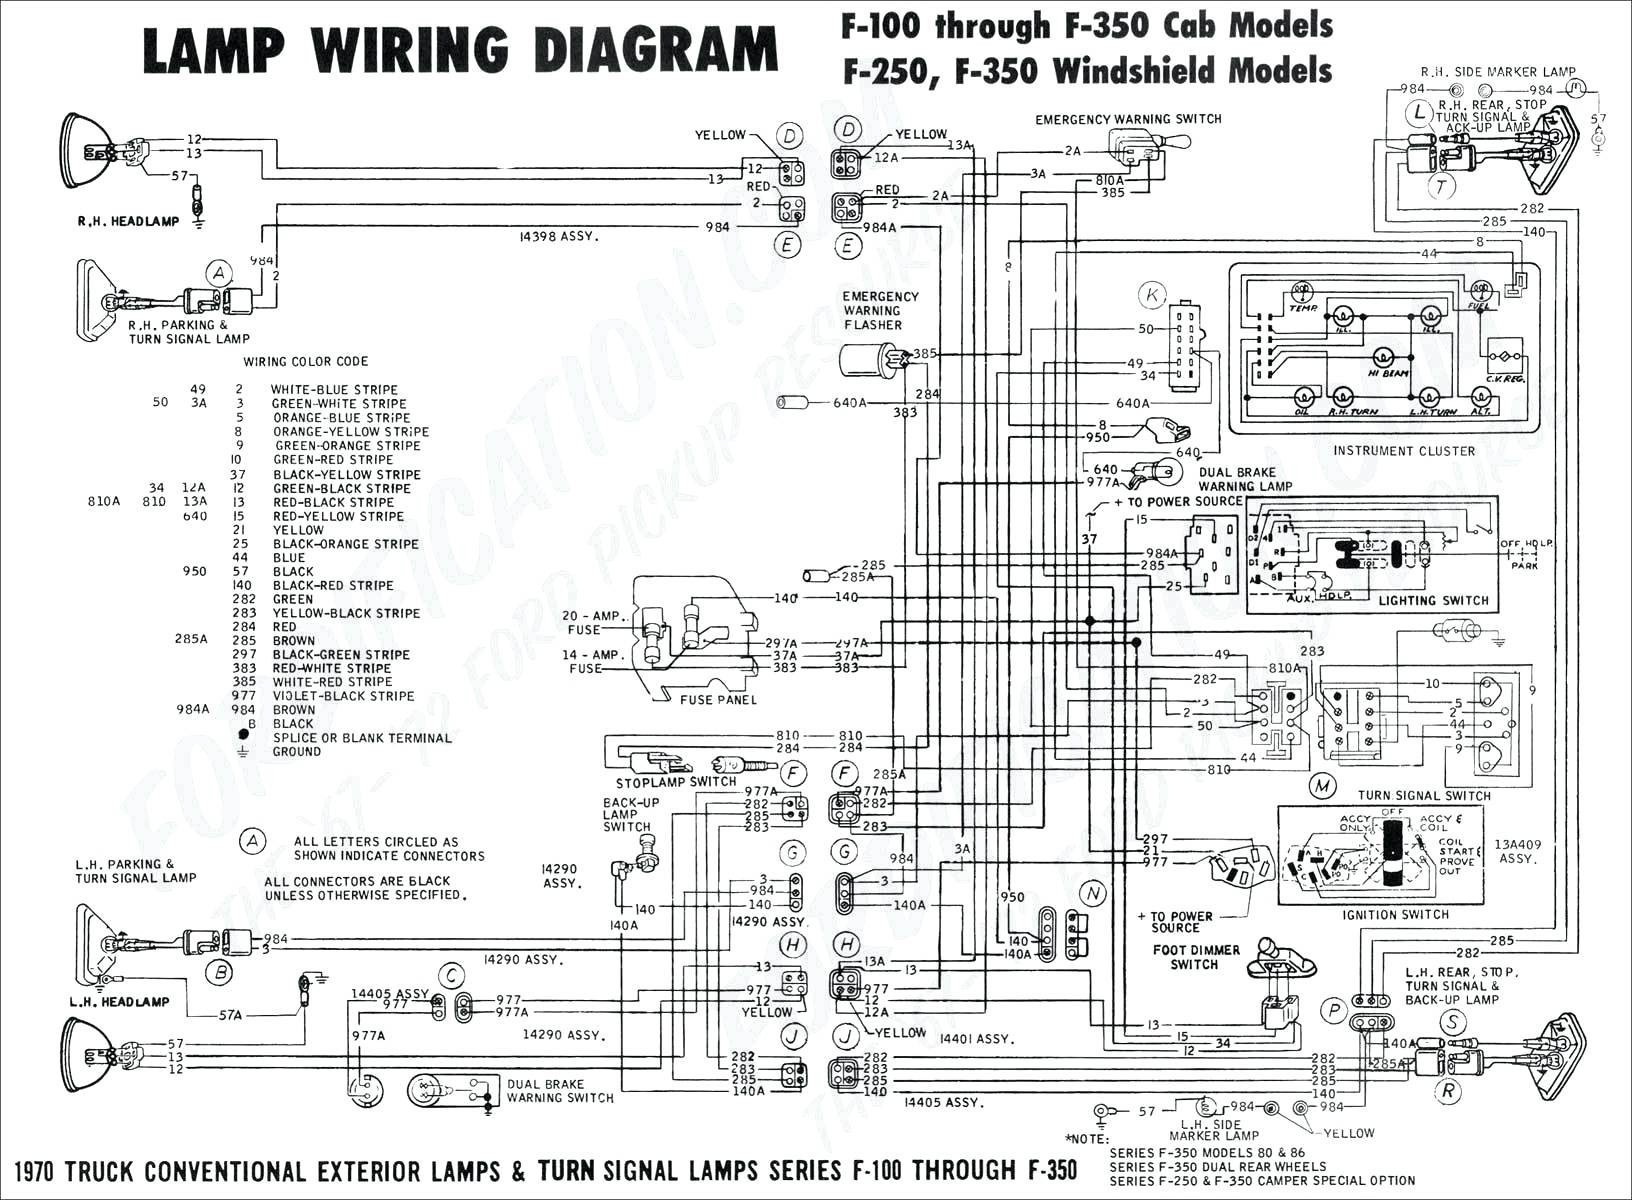 Wiring Diagram for 2002 toyota Tacoma 2002 ford F350 Super Duty Wiring Diagram Wiring Diagram Of Wiring Diagram for 2002 toyota Tacoma